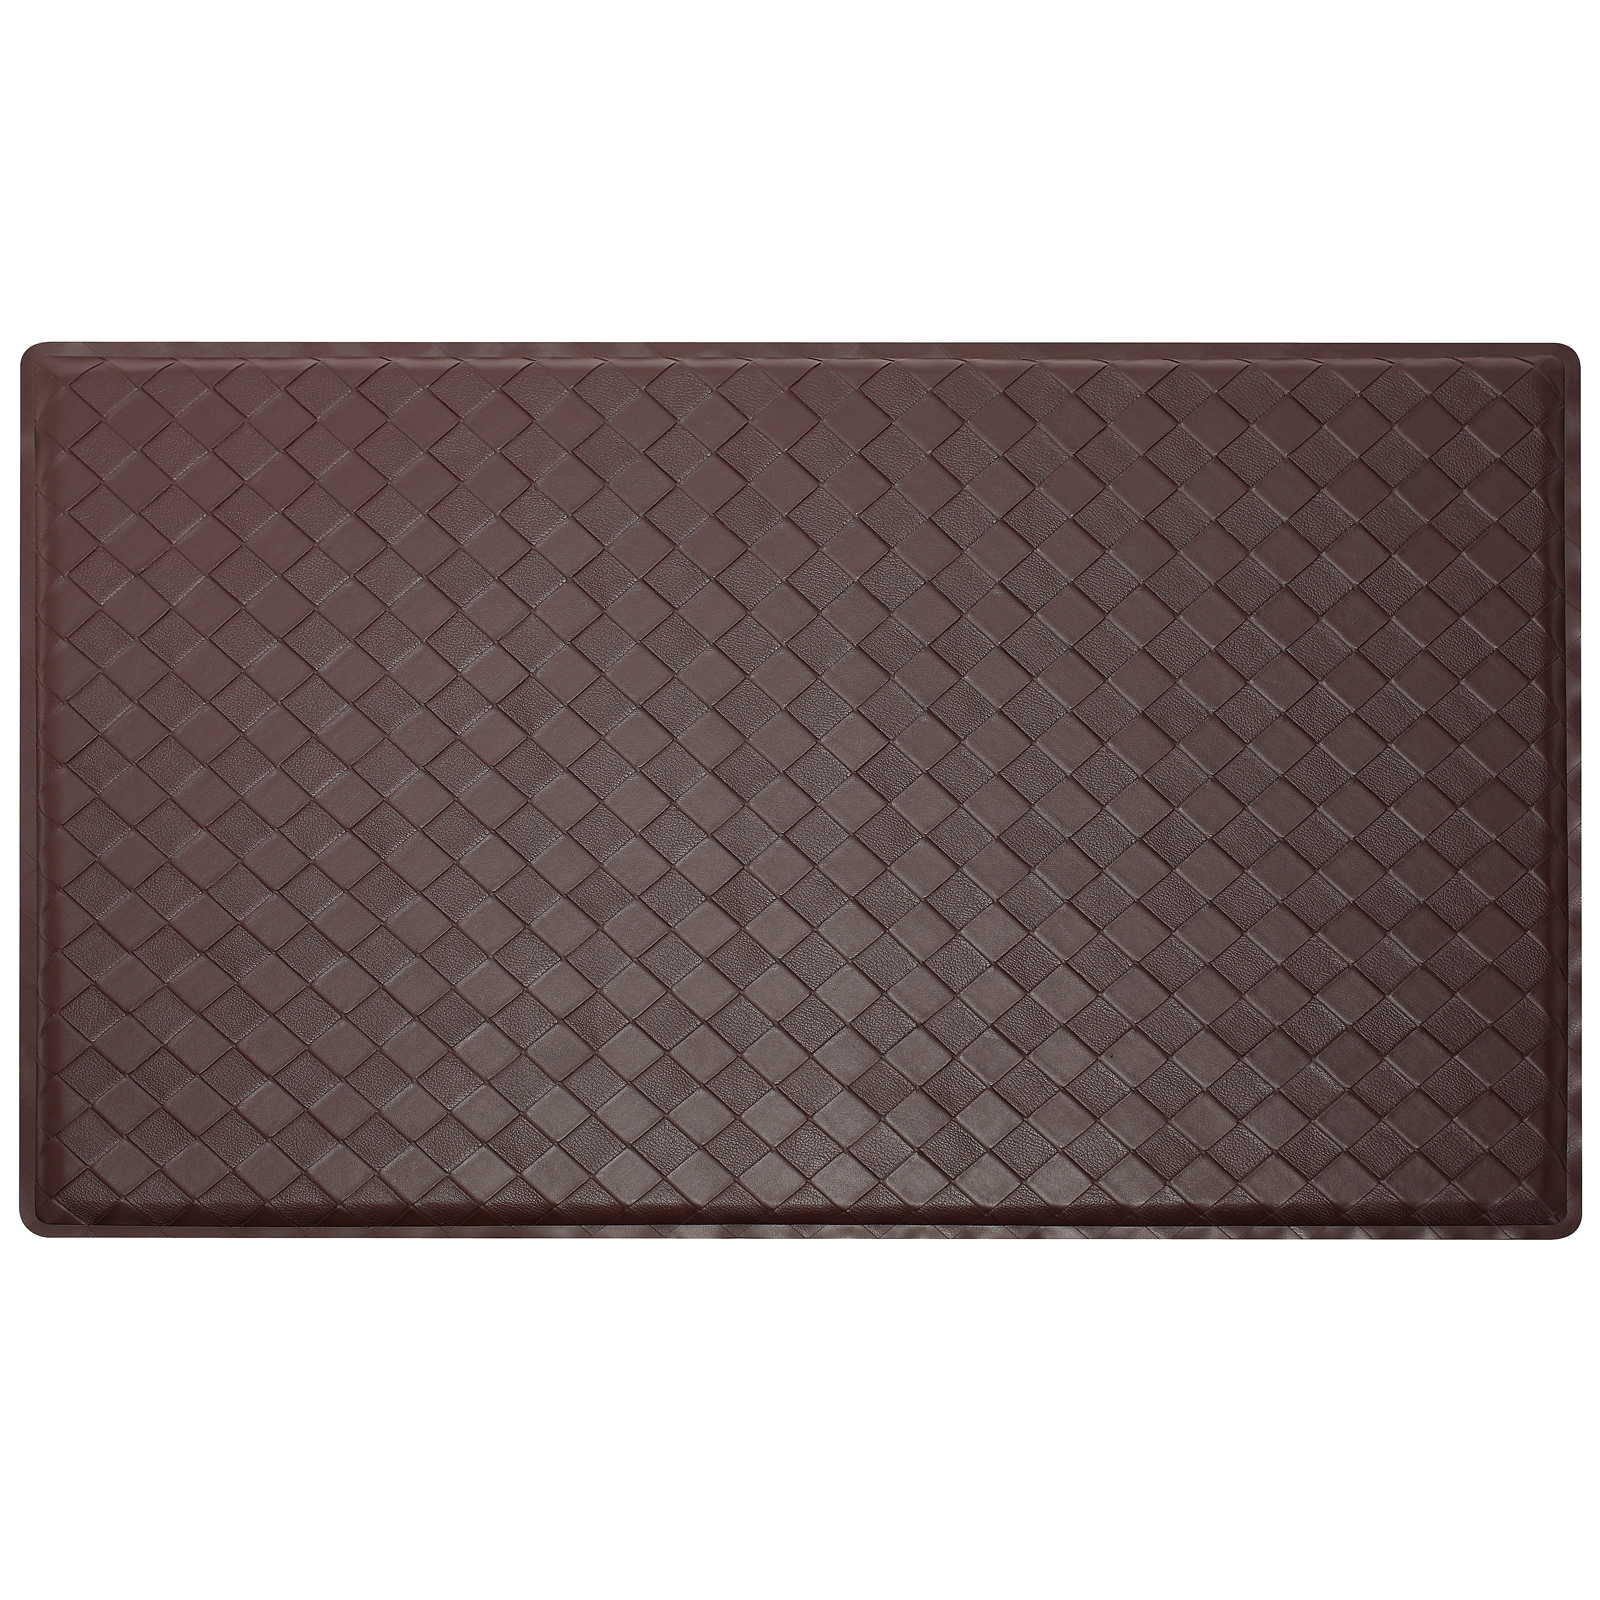 kitchen mats amazon cabinets refacing cost 2 39 x 3 modern anti fatigue floor mat rug basket